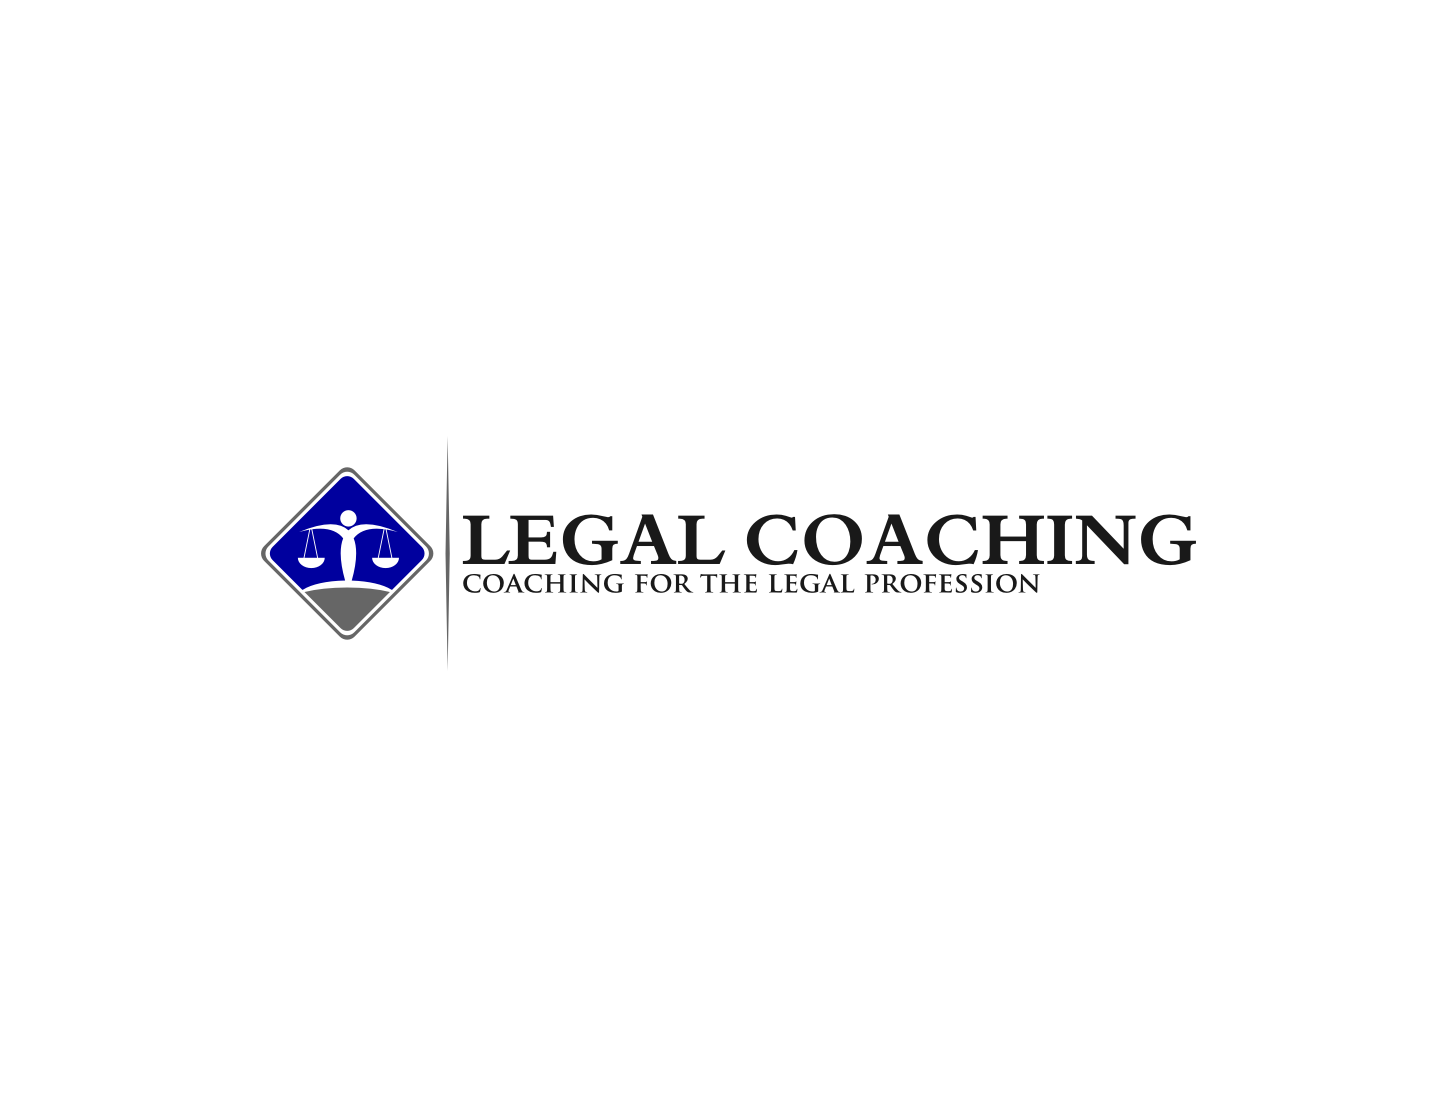 Logo Design by Tille Famz - Entry No. 45 in the Logo Design Contest New Logo Design for Legal Coaching.